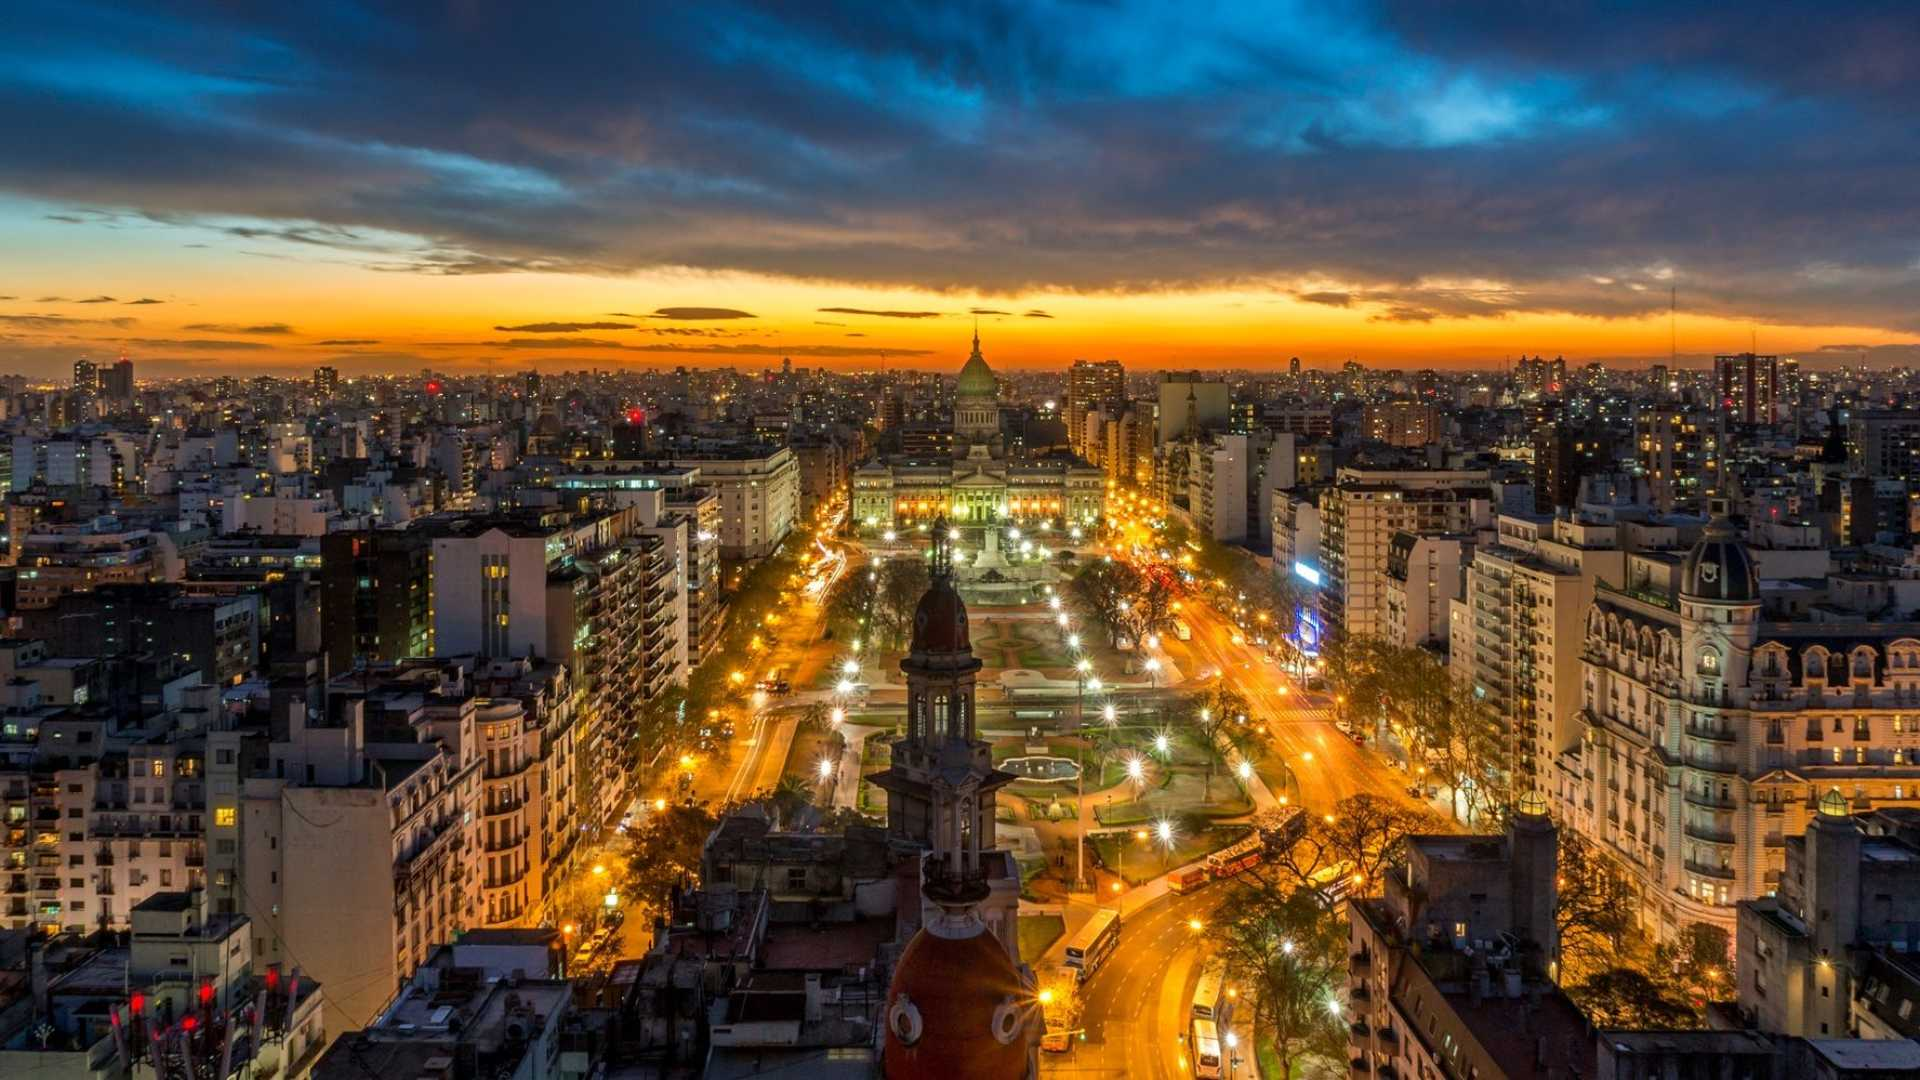 buenos aires is the capital of